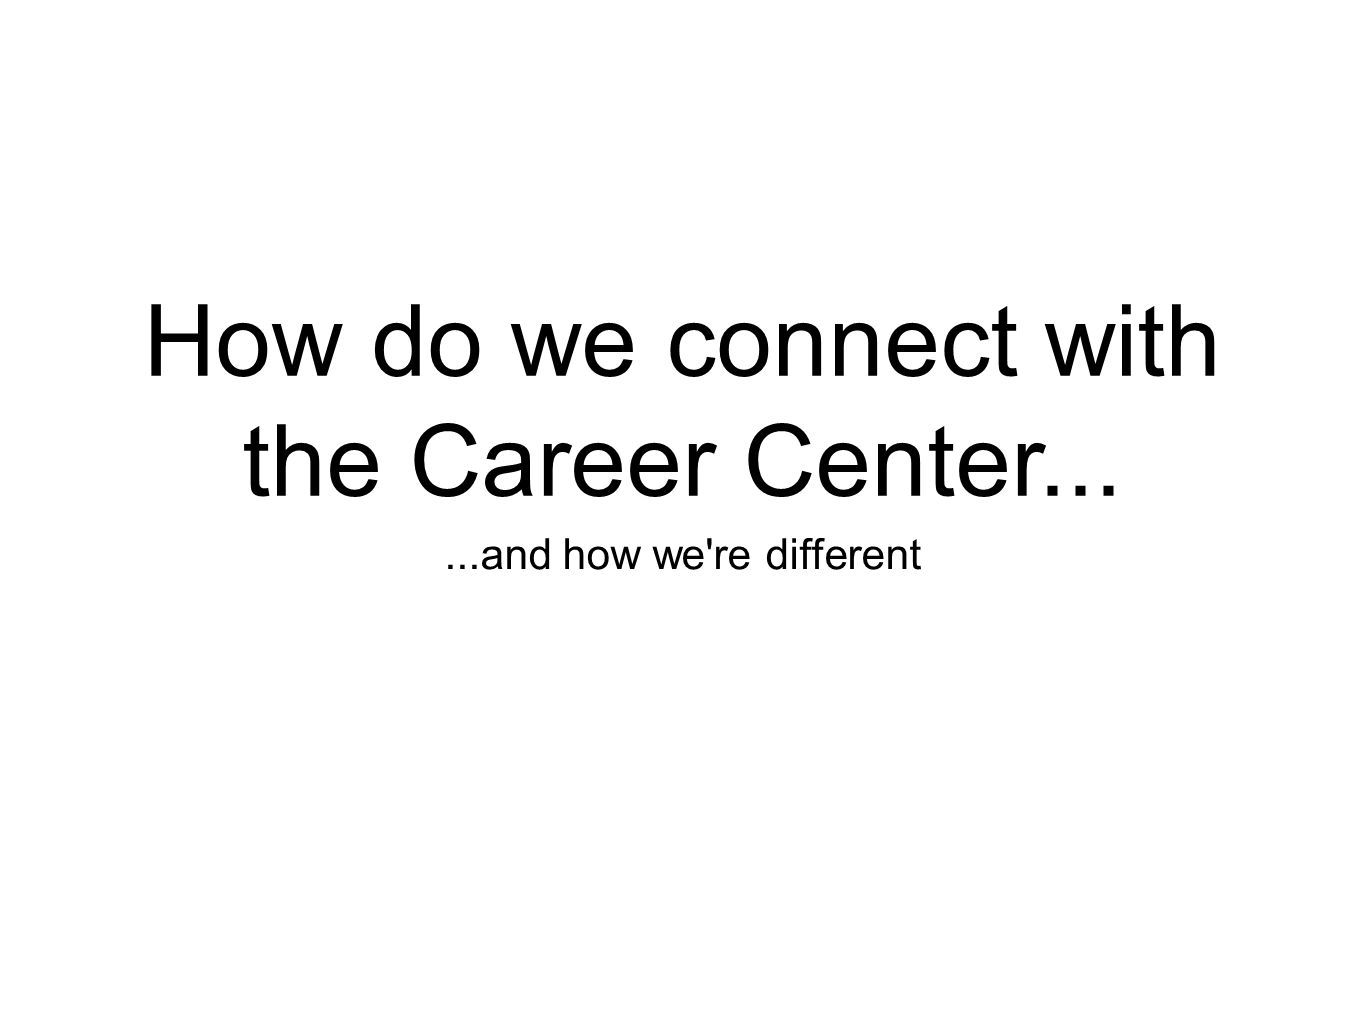 How do we connect with the Career Center......and how we re different